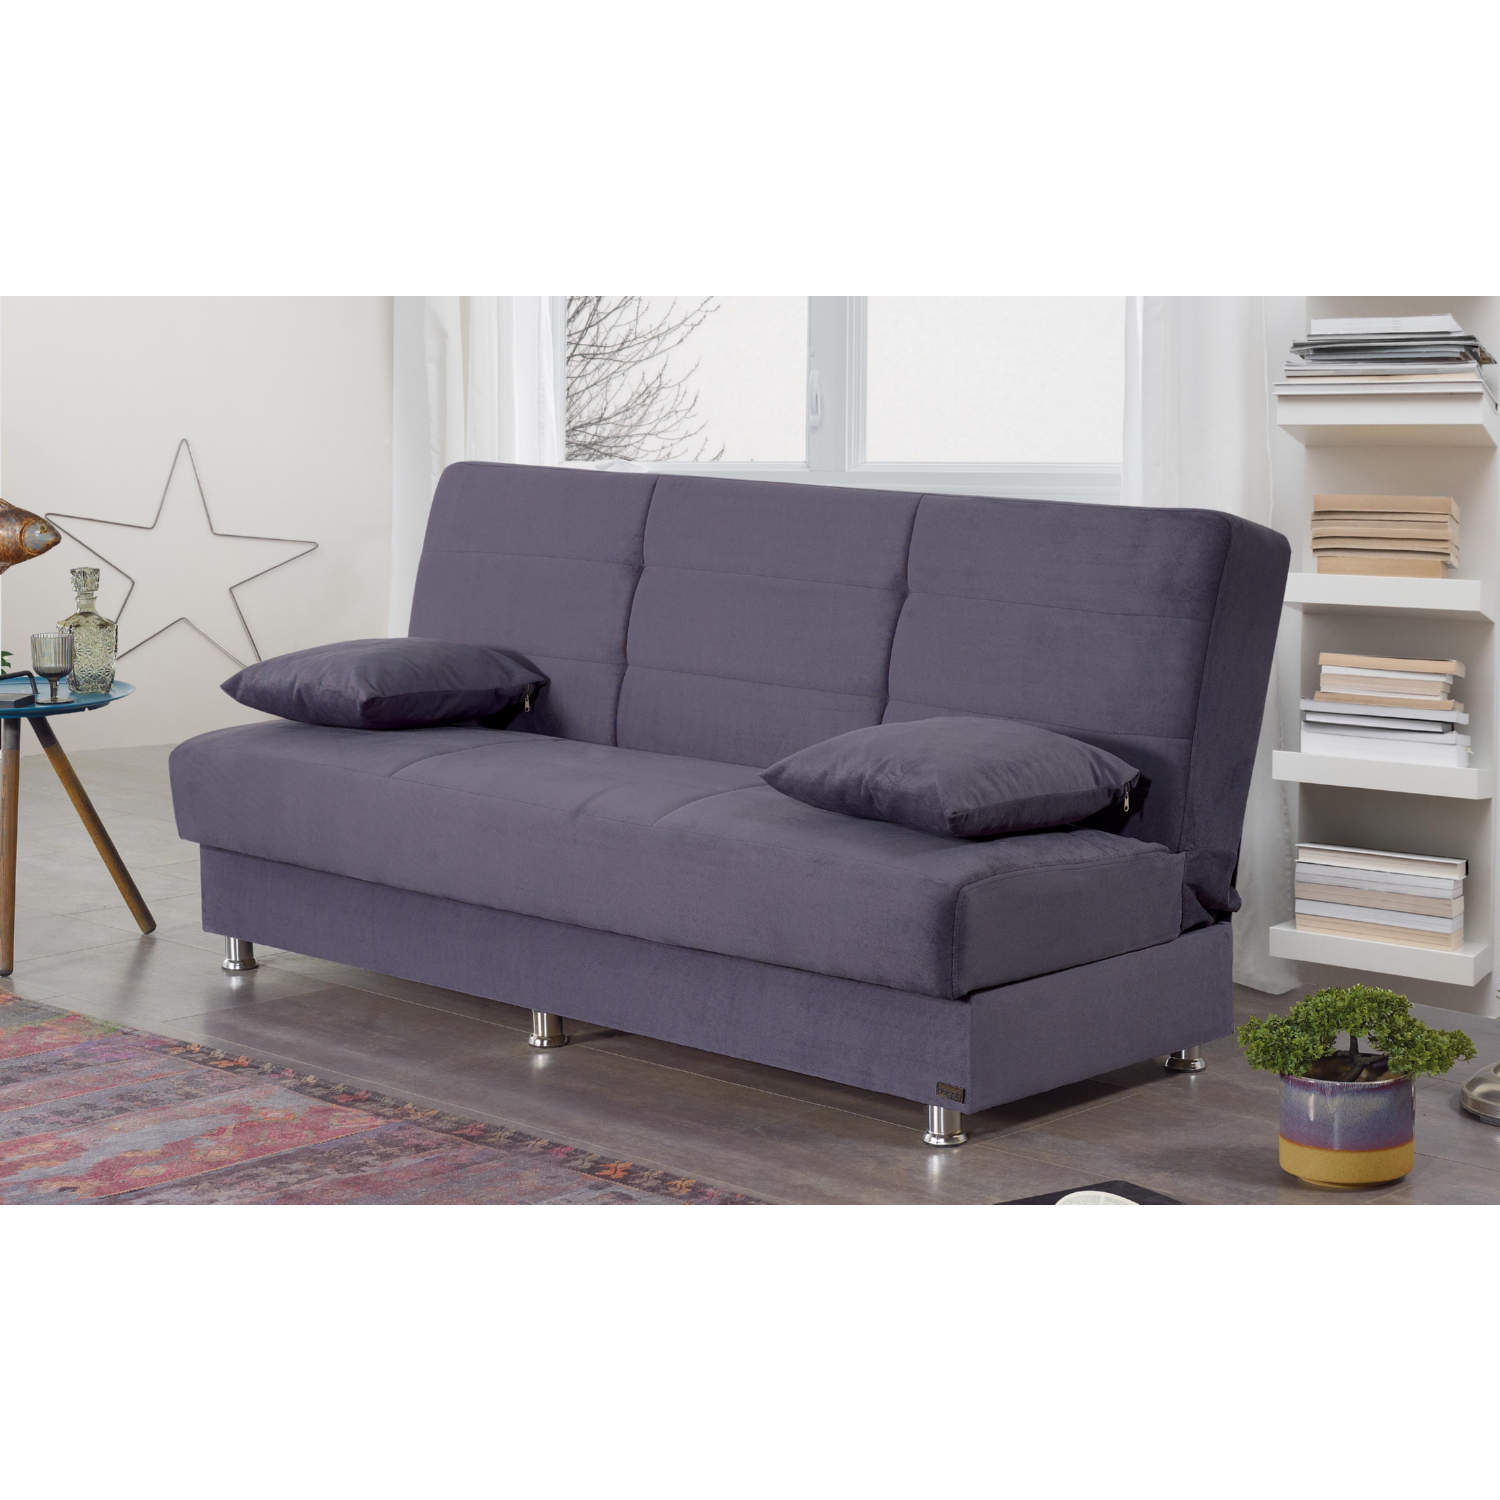 Empire Sb Ramsey Sleeper Sofa In